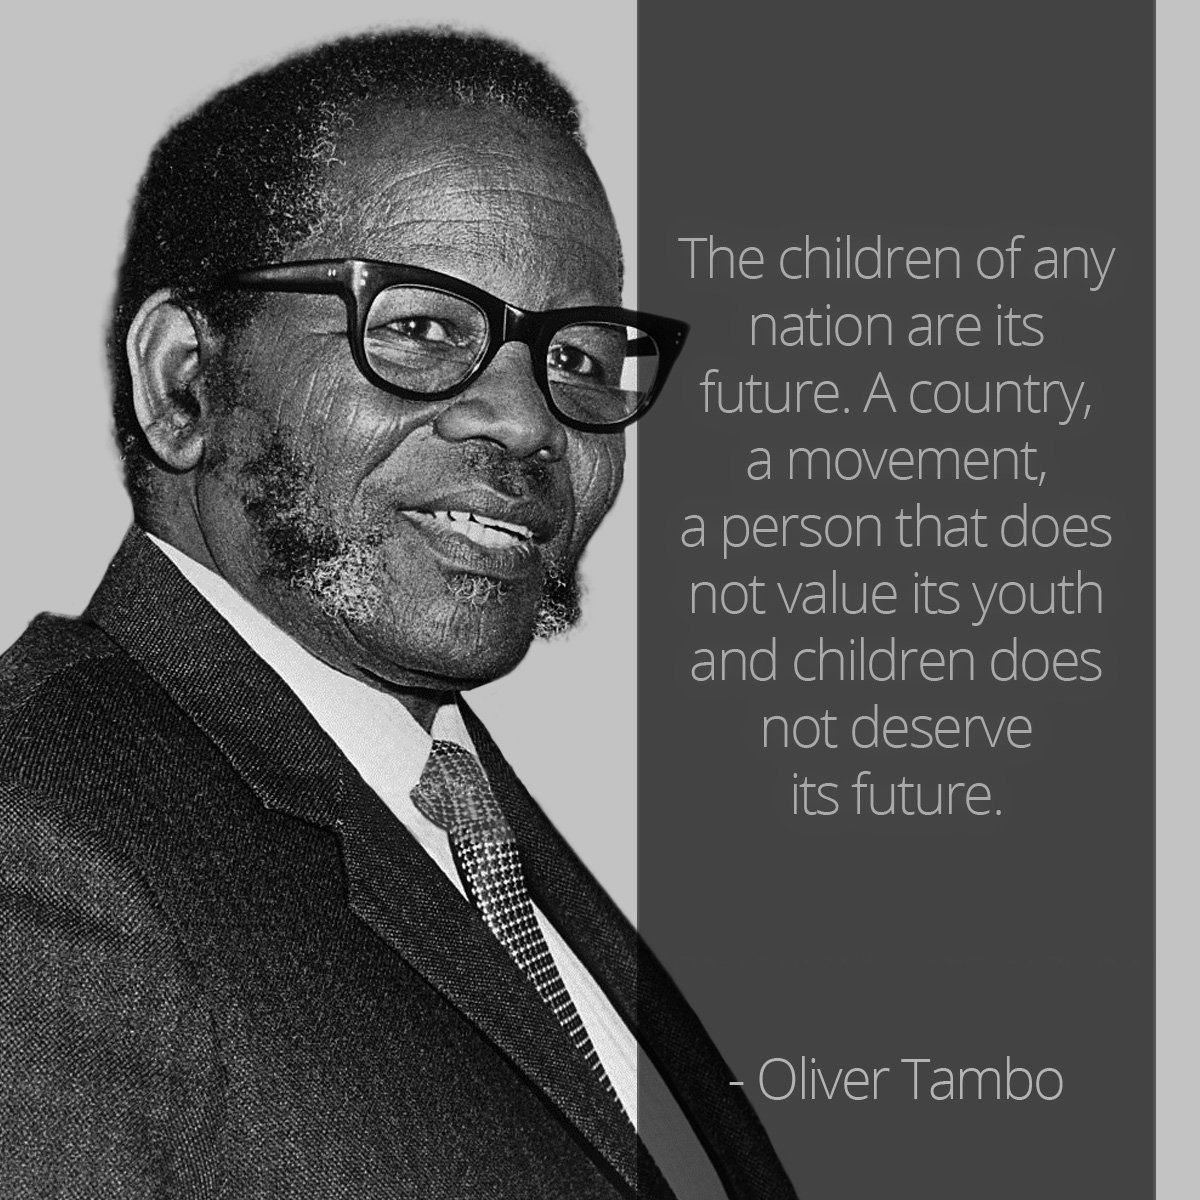 Today marks the beginning of #YouthMonth in South Africa🇿🇦.   As we reflect on the impact the young generation has made in shaping the trajectory of our country from 16, June 1976 and beyond, let us remember this poignant message from the late President of the ANC, Oliver Tambo. https://t.co/jjgKKkZUfb